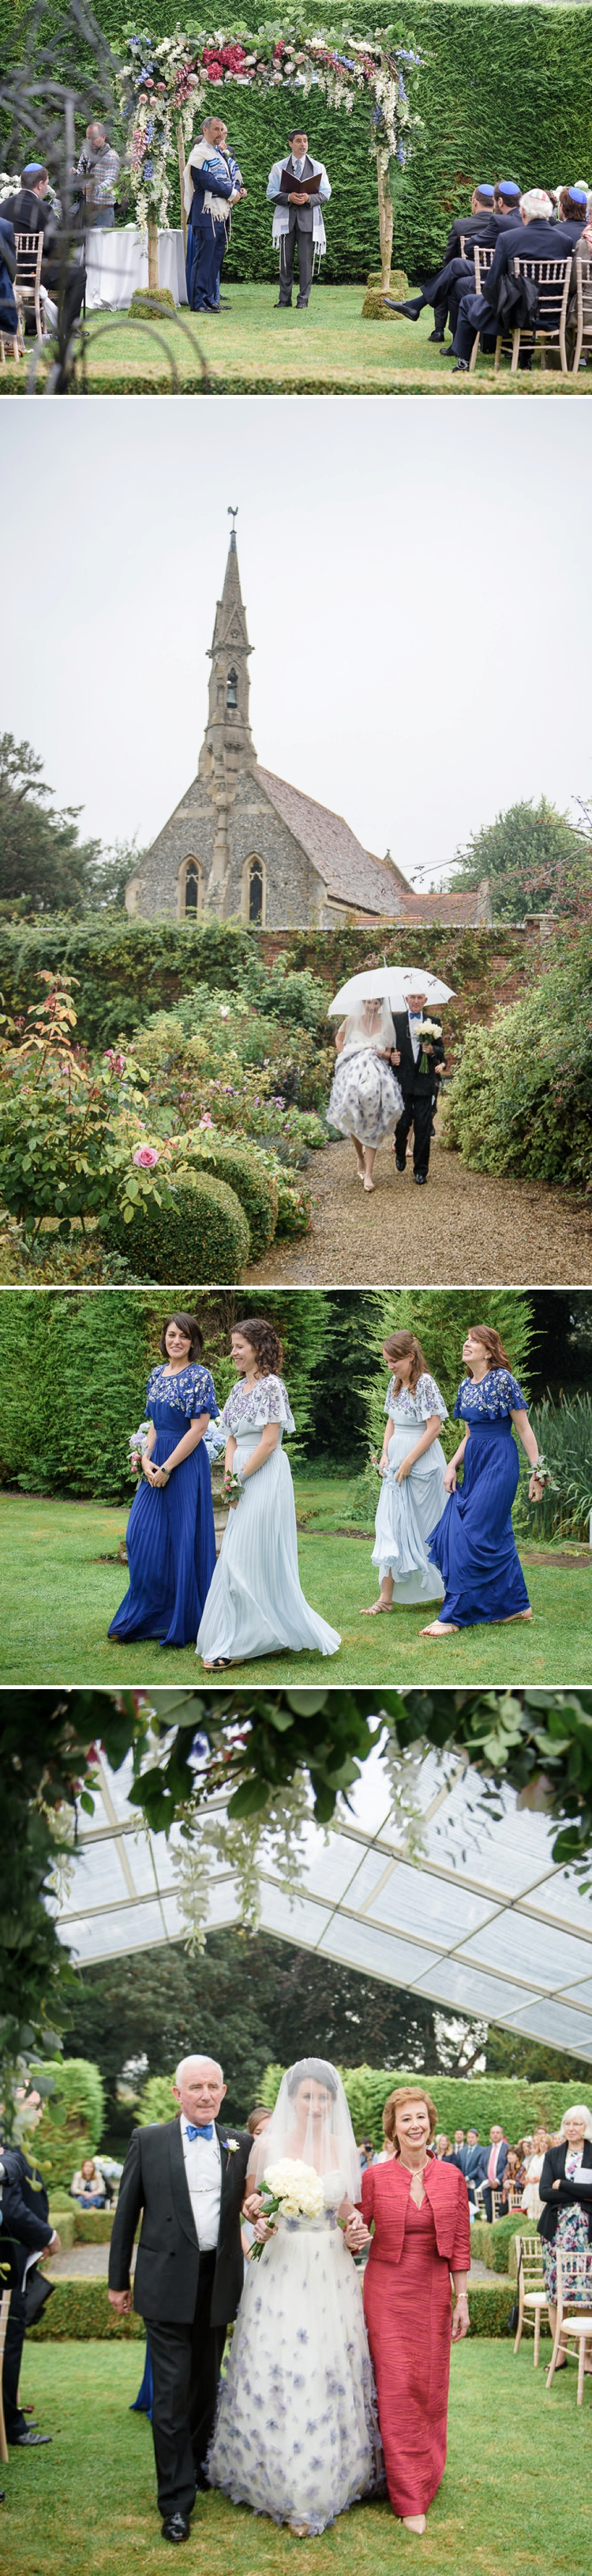 Stephanie Allin bride for an English country garden Jewish wedding_0164